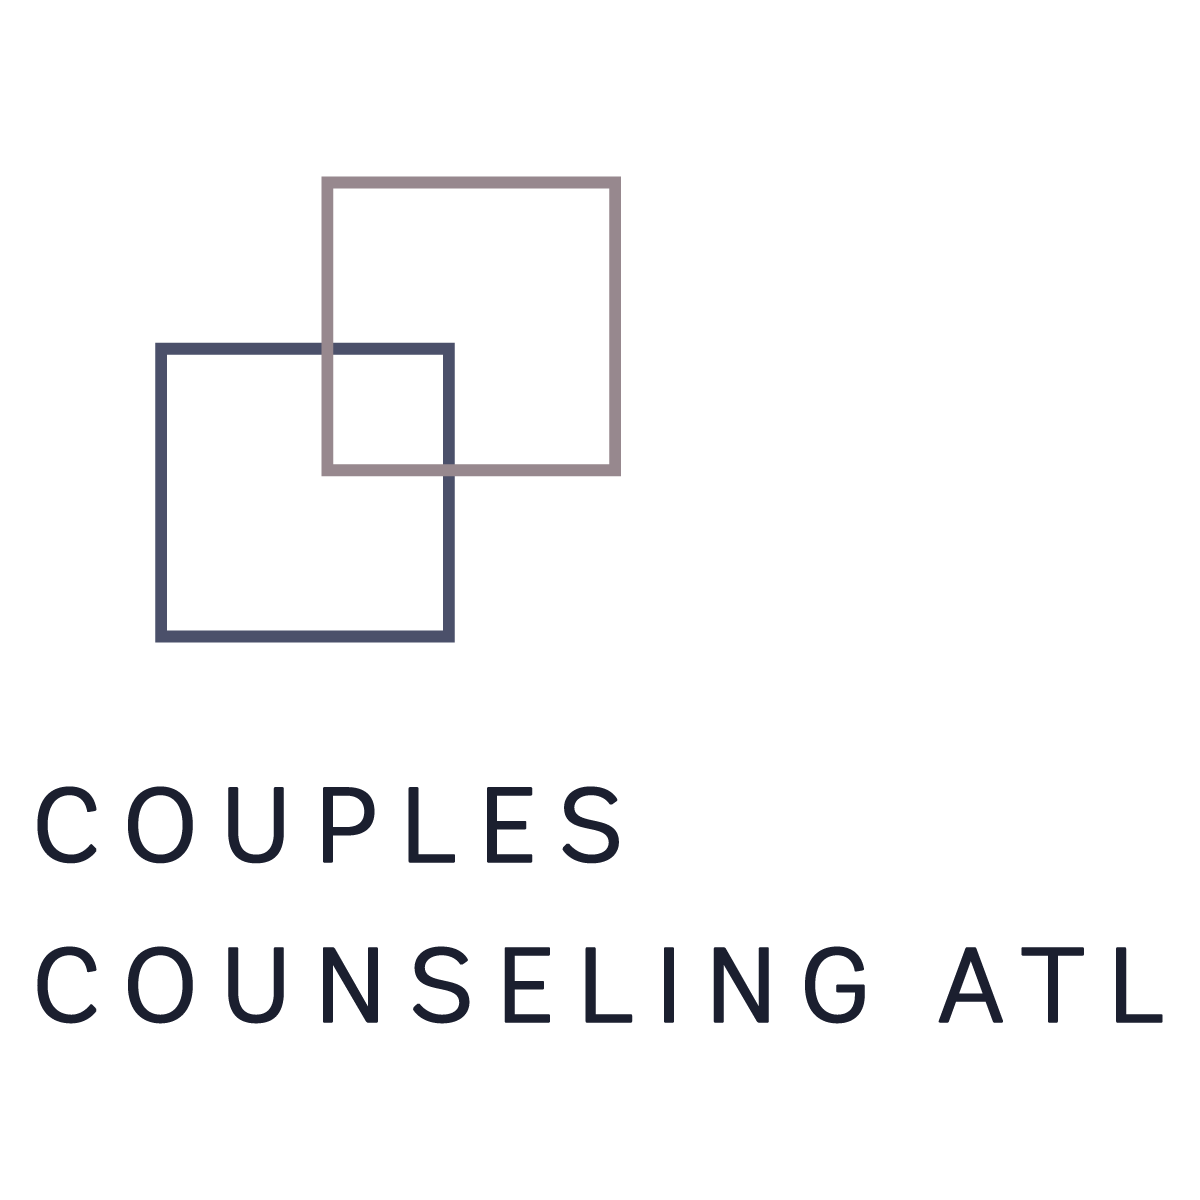 Low Cost Counseling Services in Atlanta